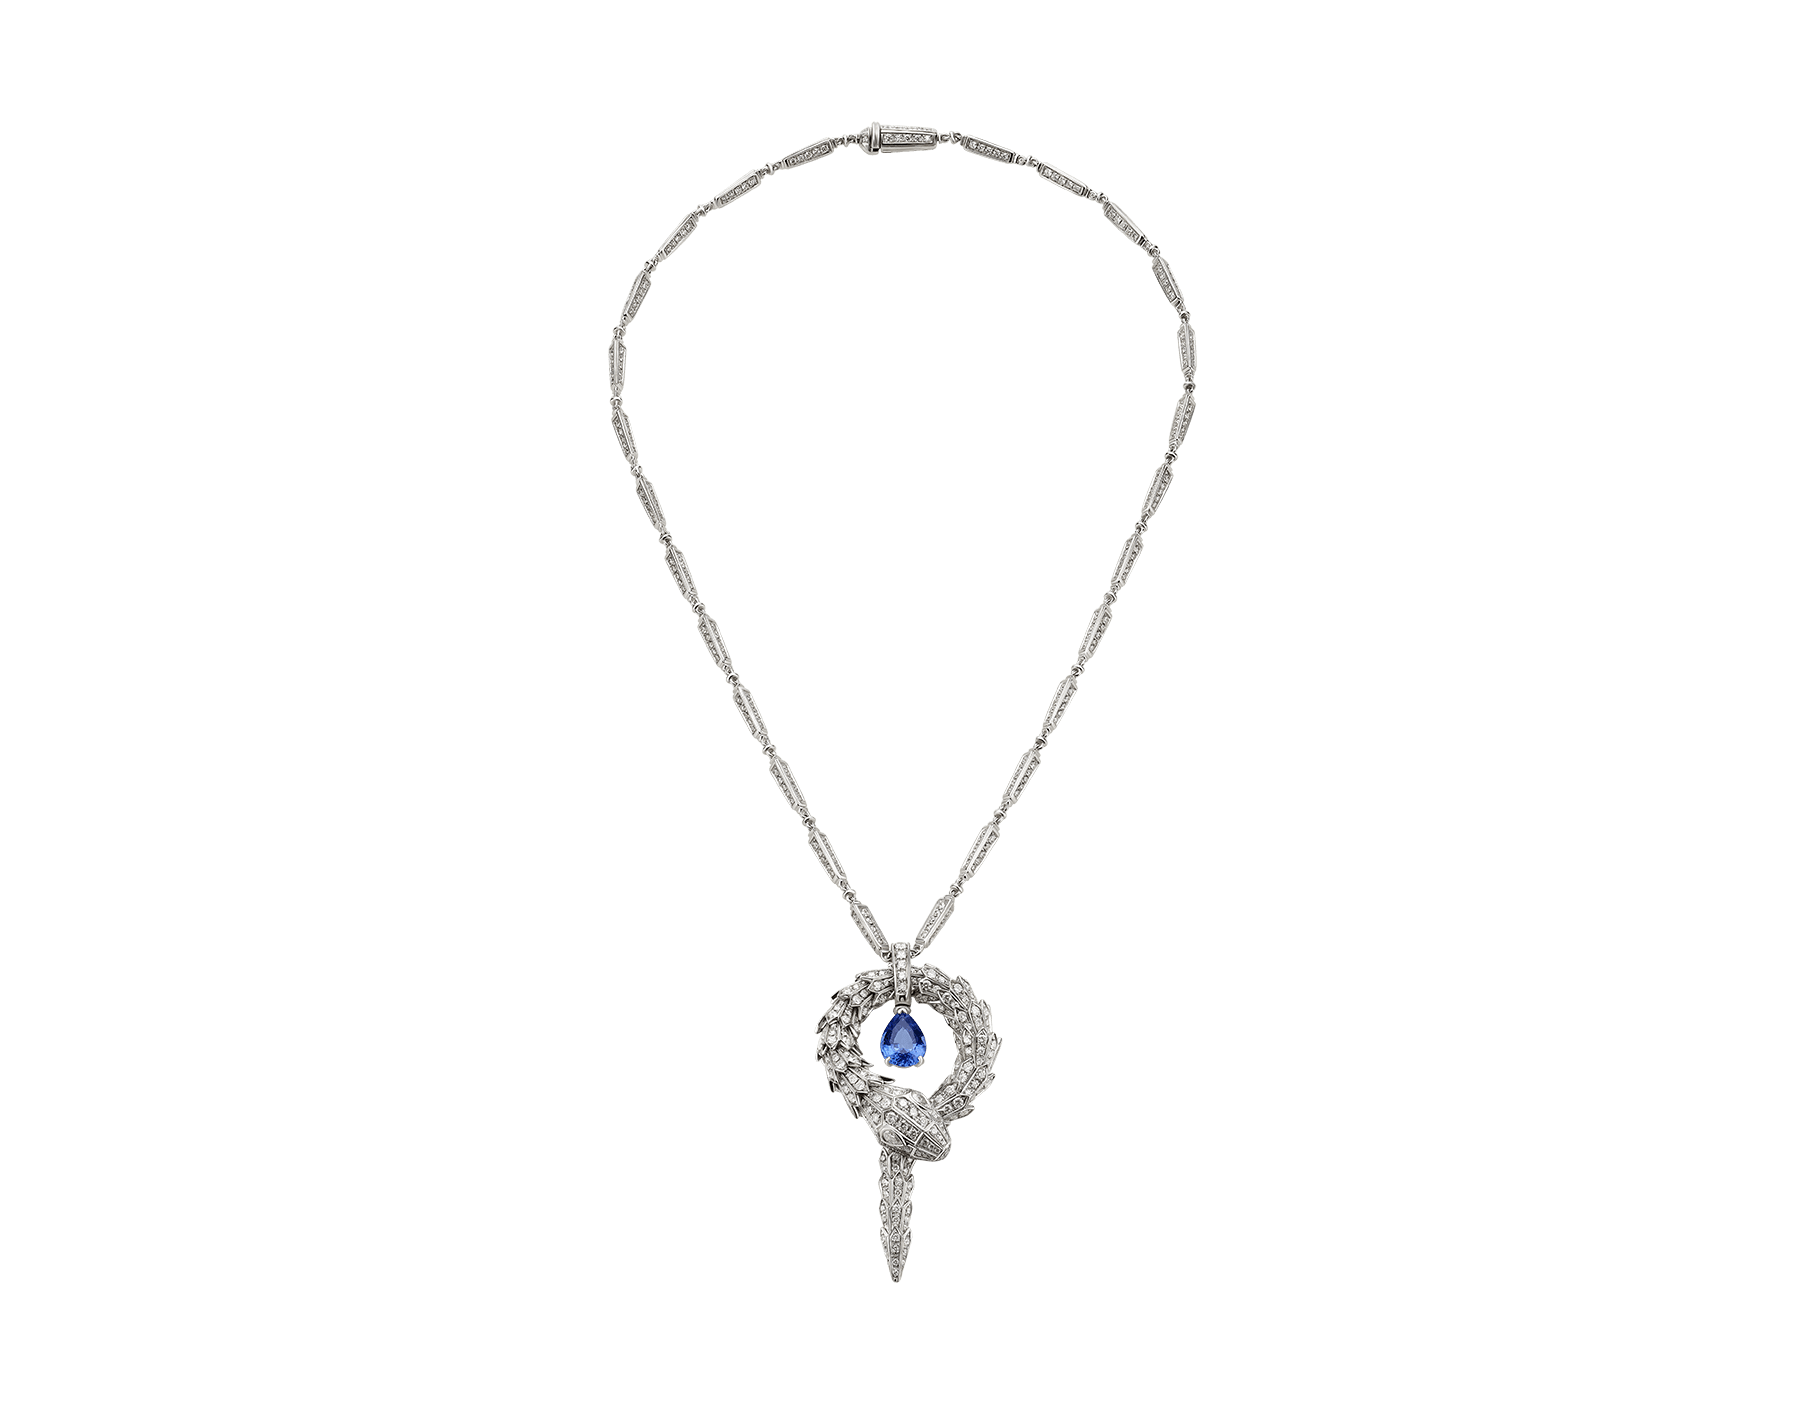 Piccolo pendente Serpenti in oro bianco 18 kt con tanzanite e pavé di diamanti. 354089 image 1